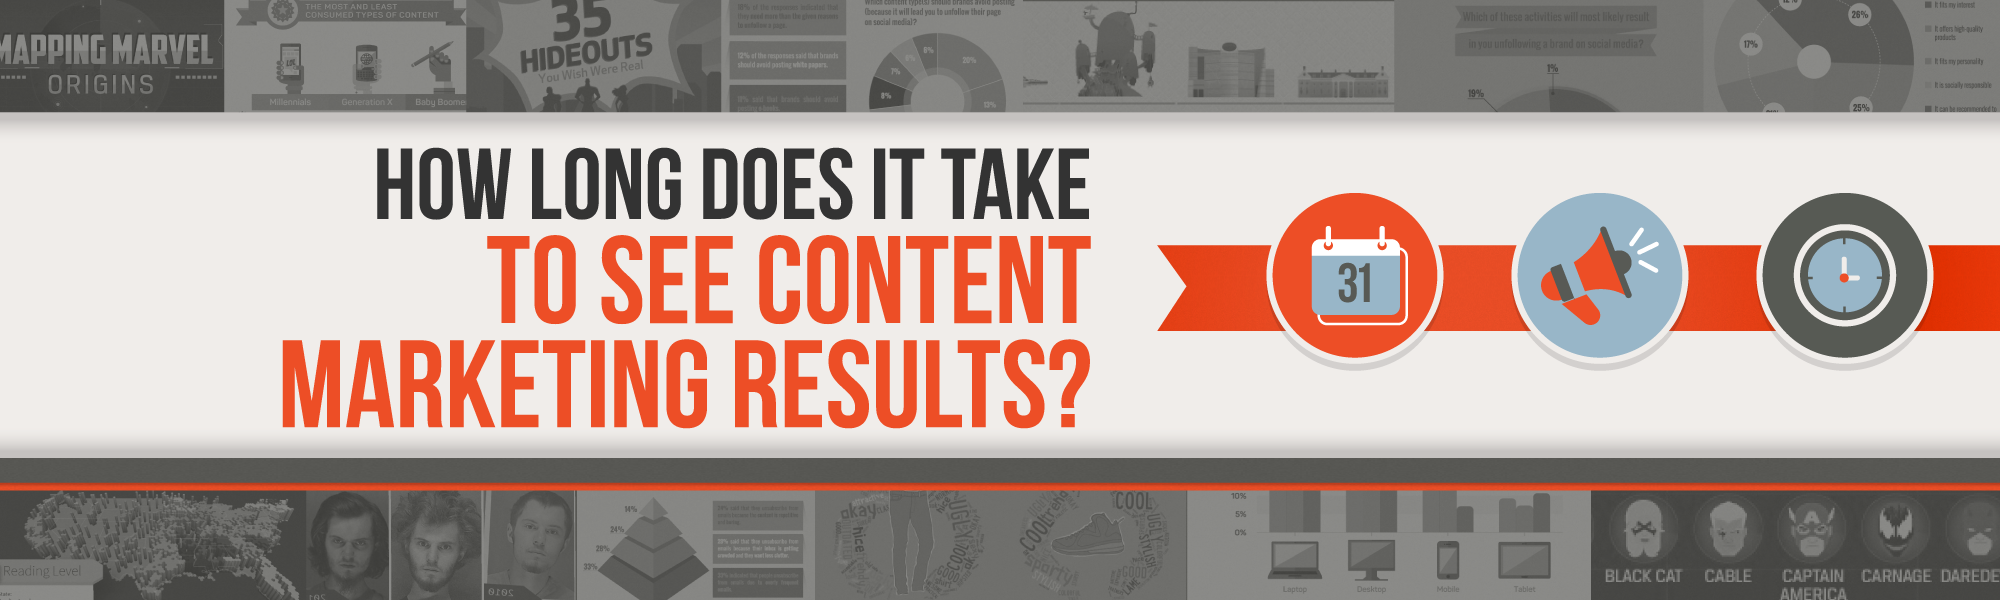 content-marketing-results-header.png